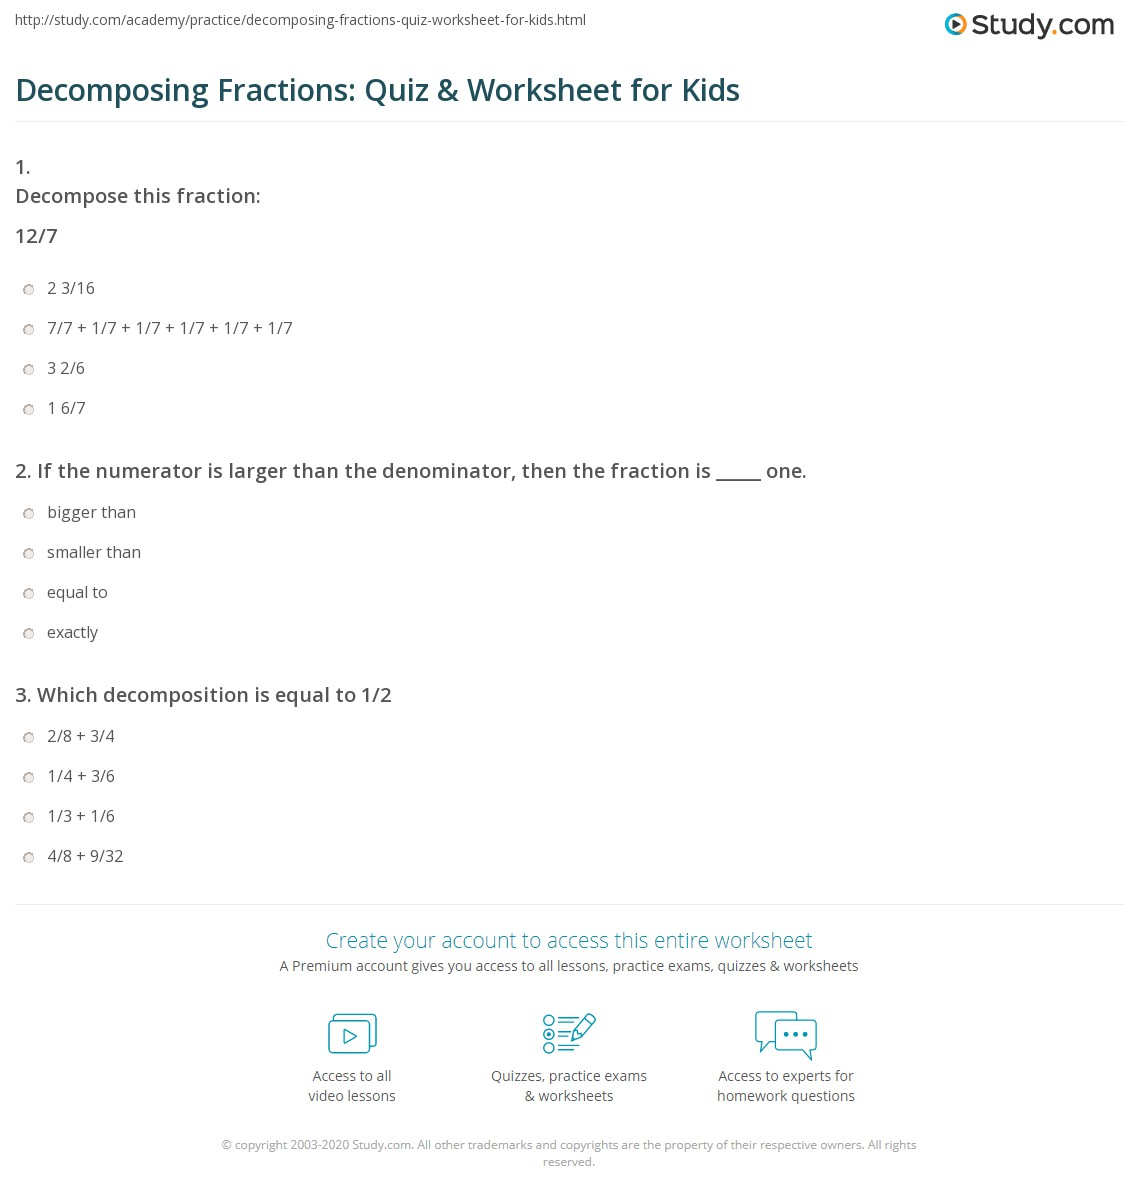 Decomposing Fractions: Quiz & Worksheet for Kids | Study.com